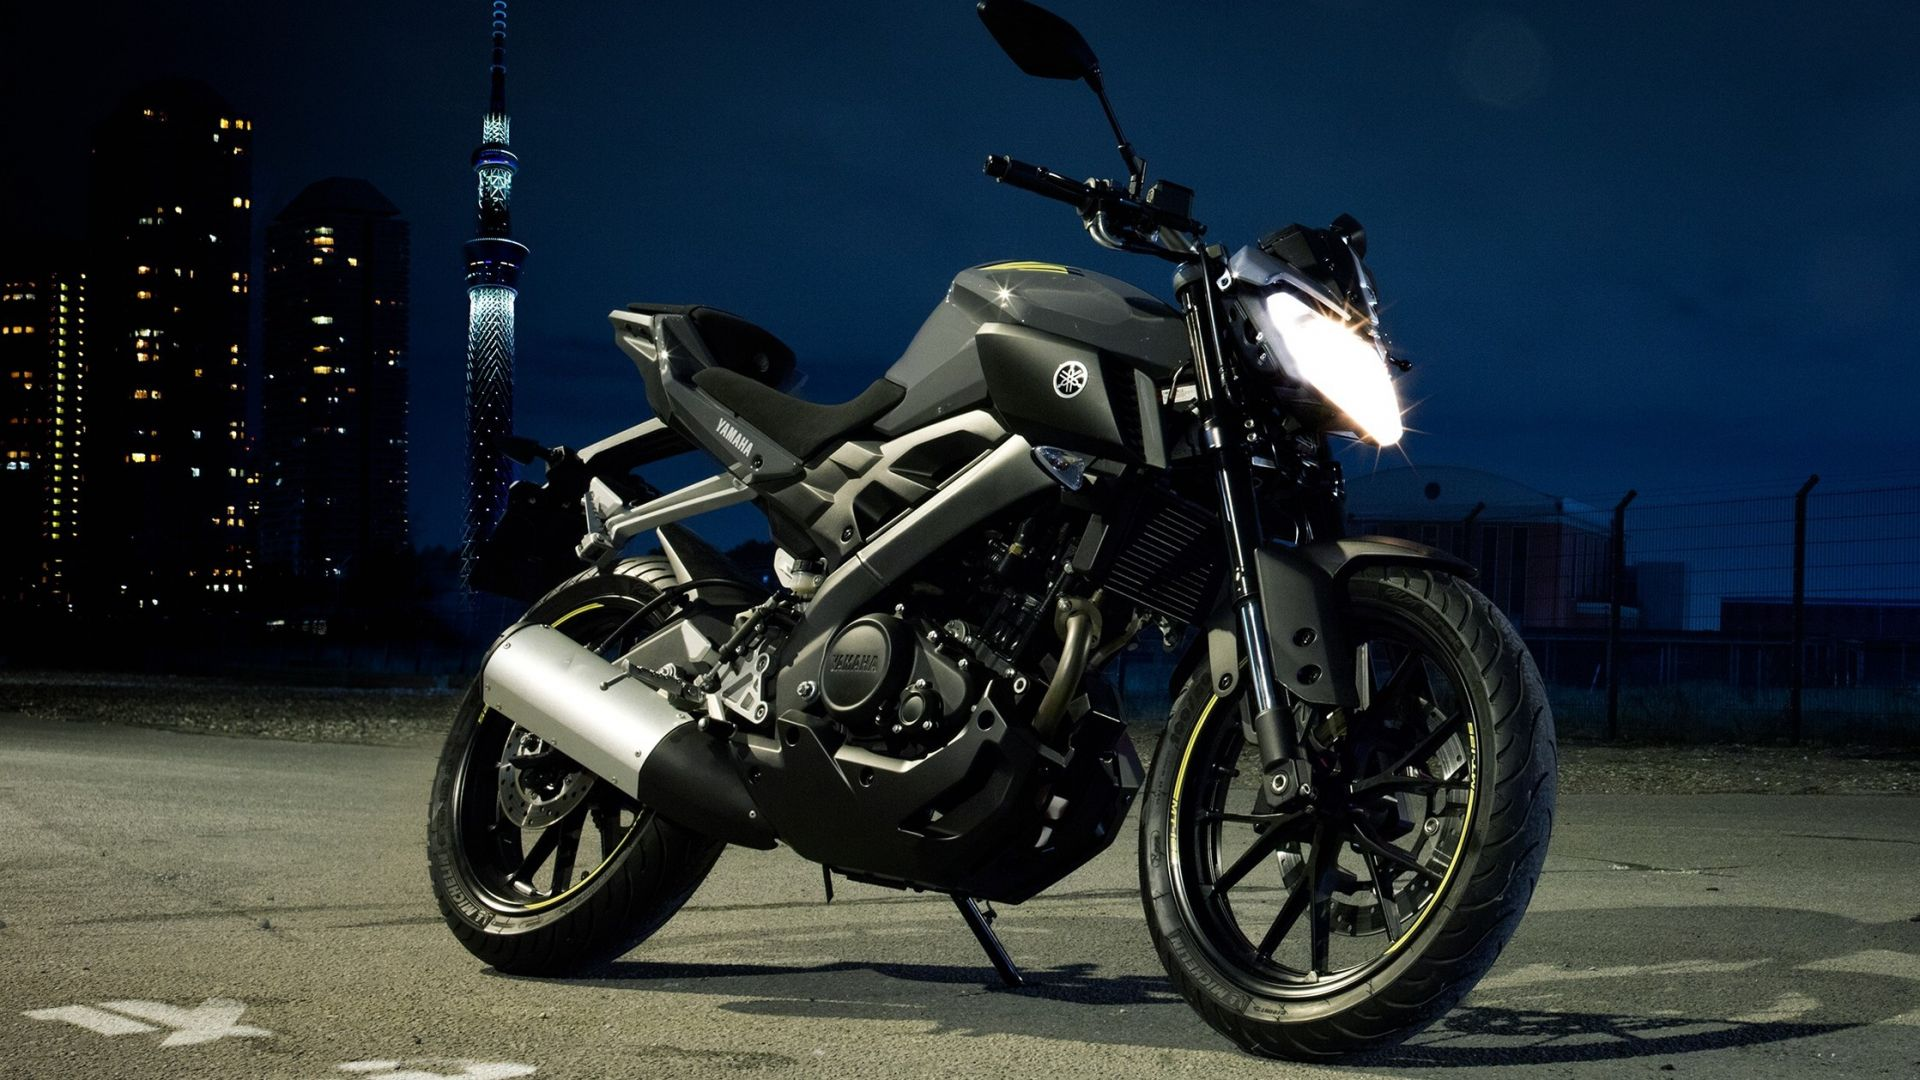 novit moto yamaha mt 125 2016 motorbox. Black Bedroom Furniture Sets. Home Design Ideas